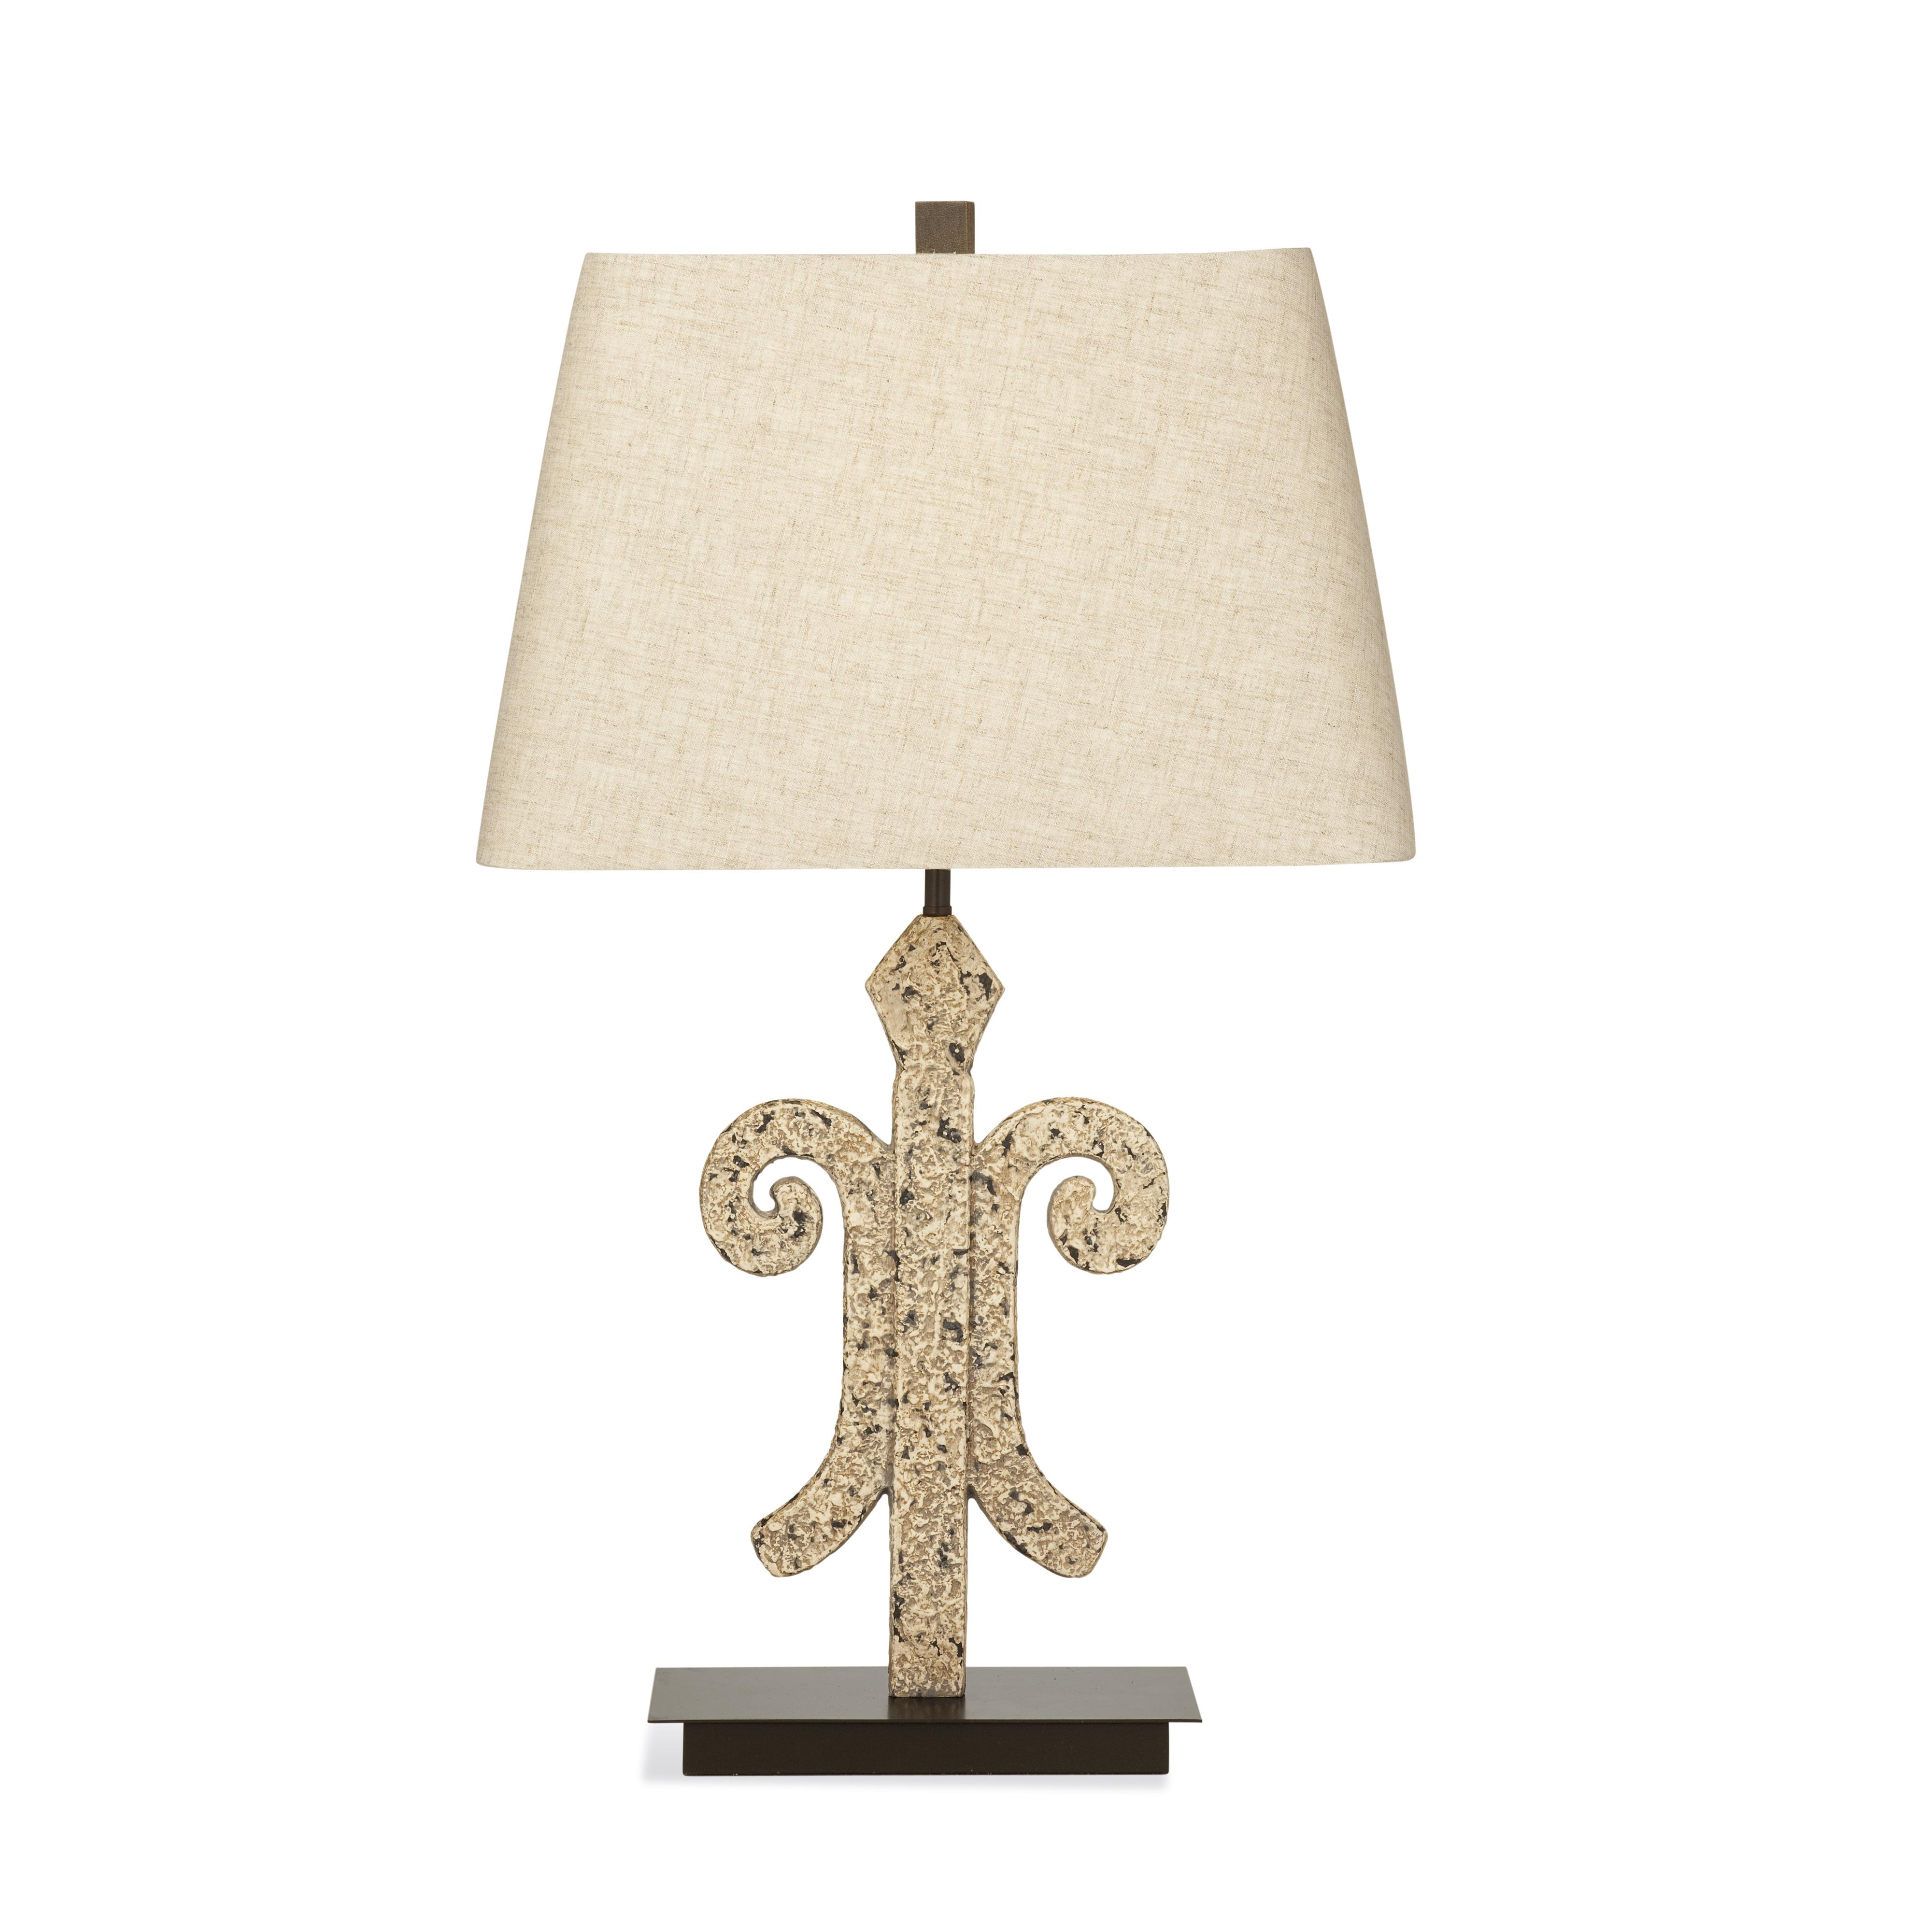 Pan Pacific Augusta Table Lamp by Bassett Mirror at Esprit Decor Home Furnishings